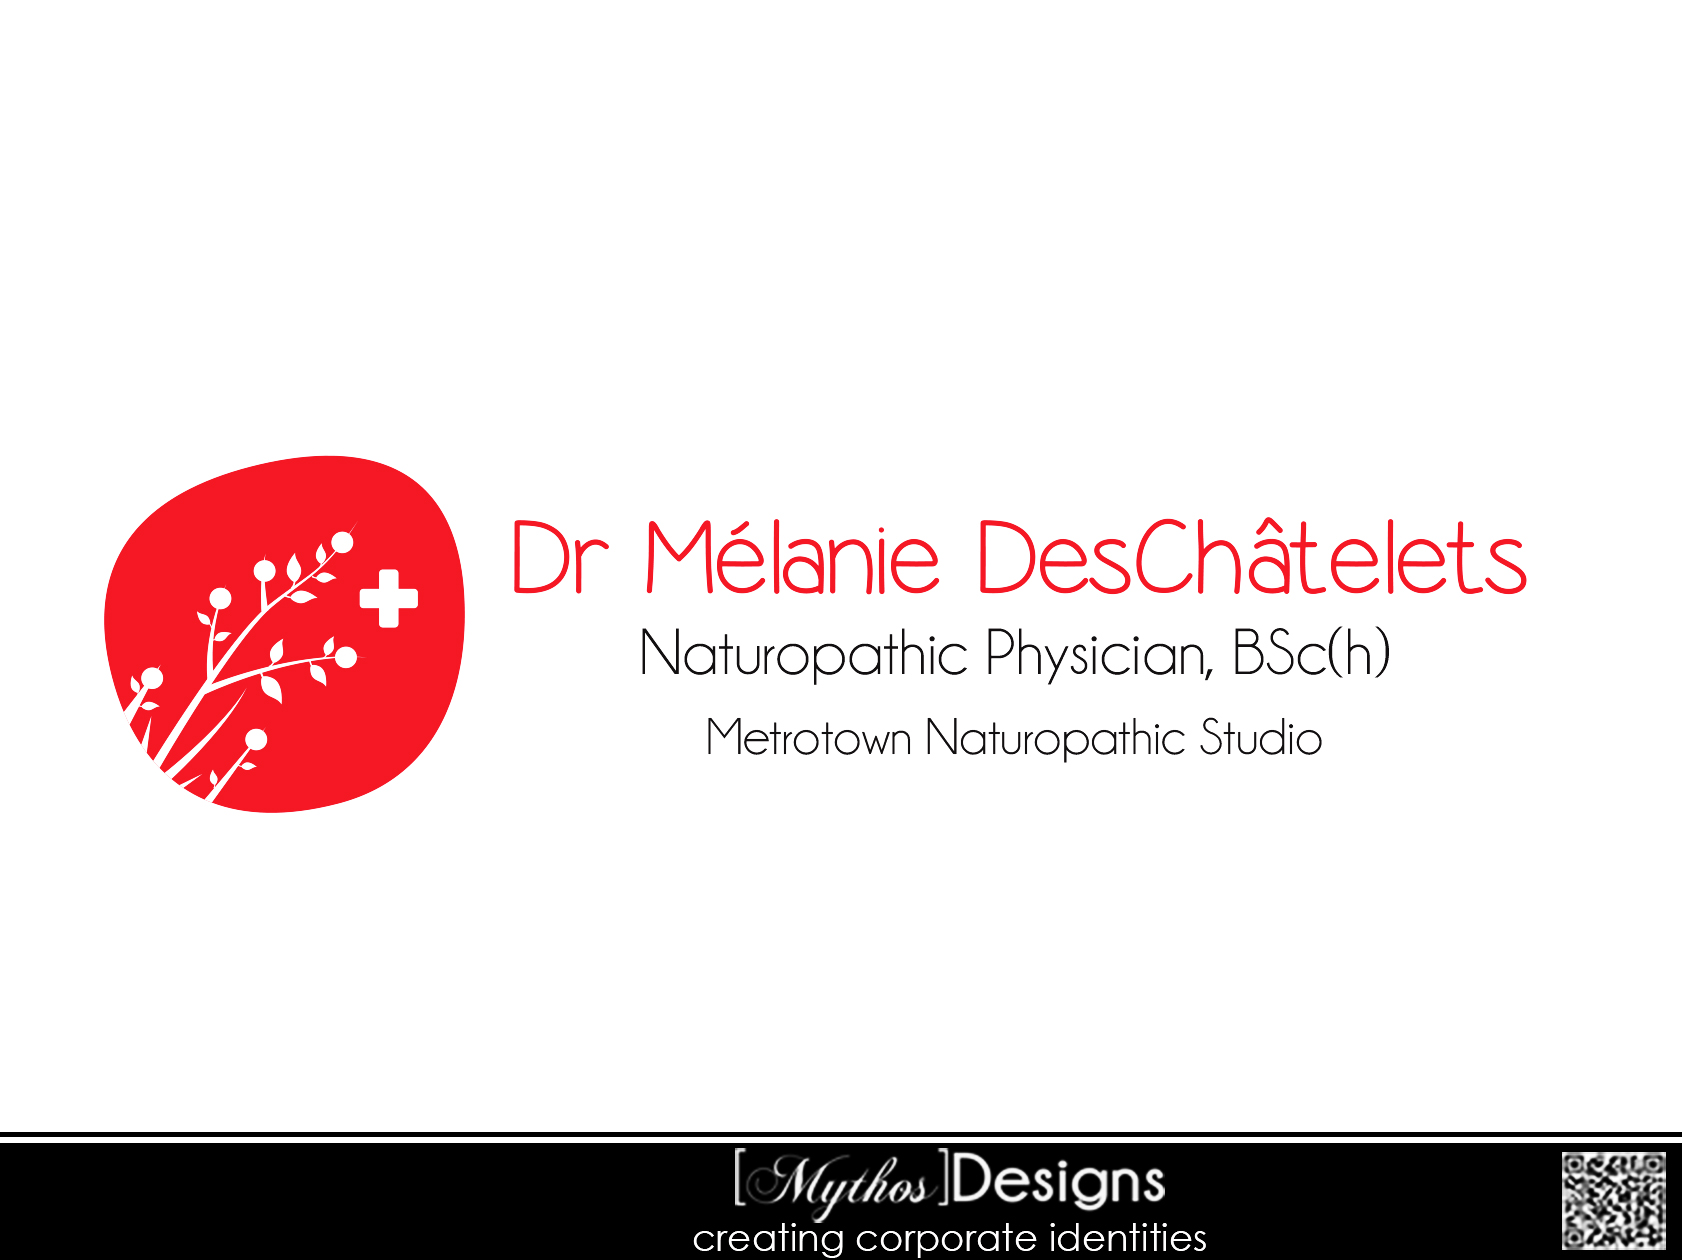 Logo Design by Mythos Designs - Entry No. 56 in the Logo Design Contest Artistic Logo Design for Dr Mélanie DesChâtelets.